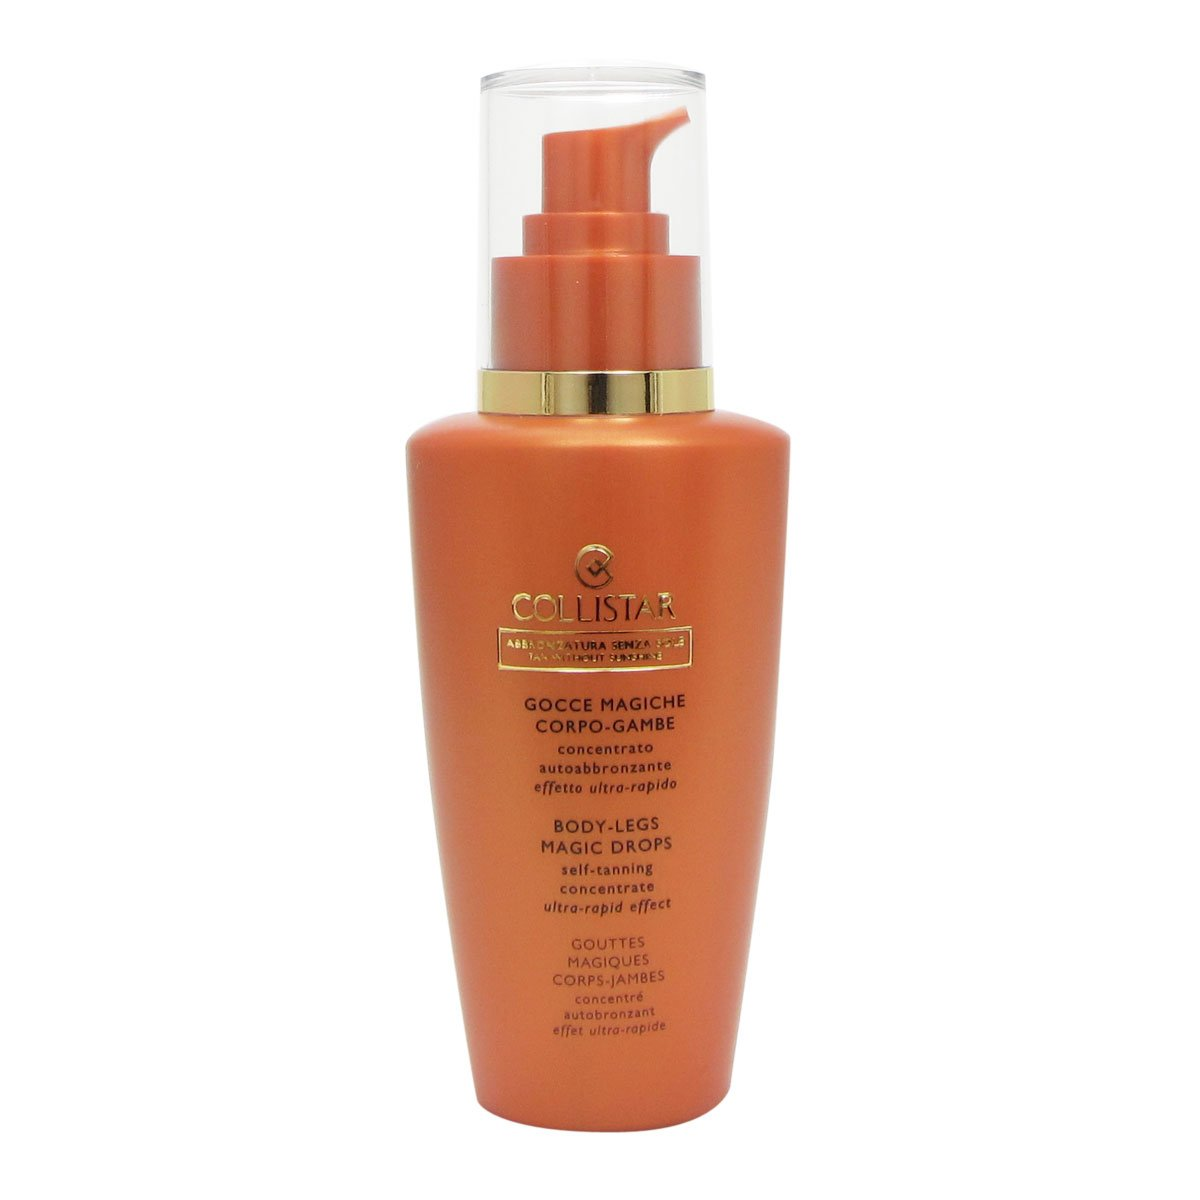 Body-Legs Magic Drops - Concentrated Self-Tanner Ultra-Rapid Effect by COLLISTAR